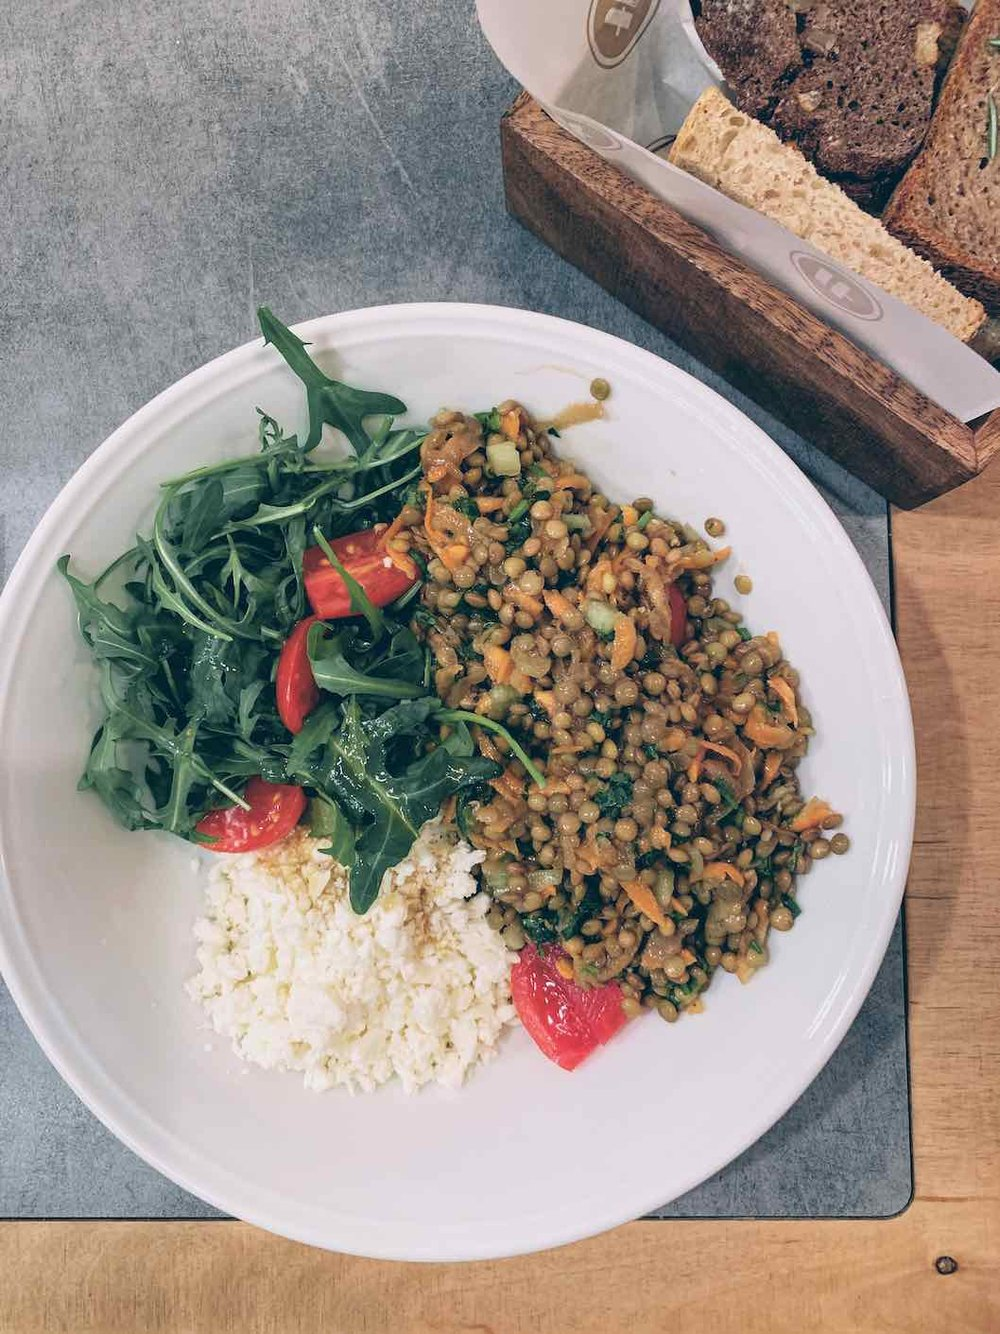 Lentil salad with crumbled cheese and wild rocket salad